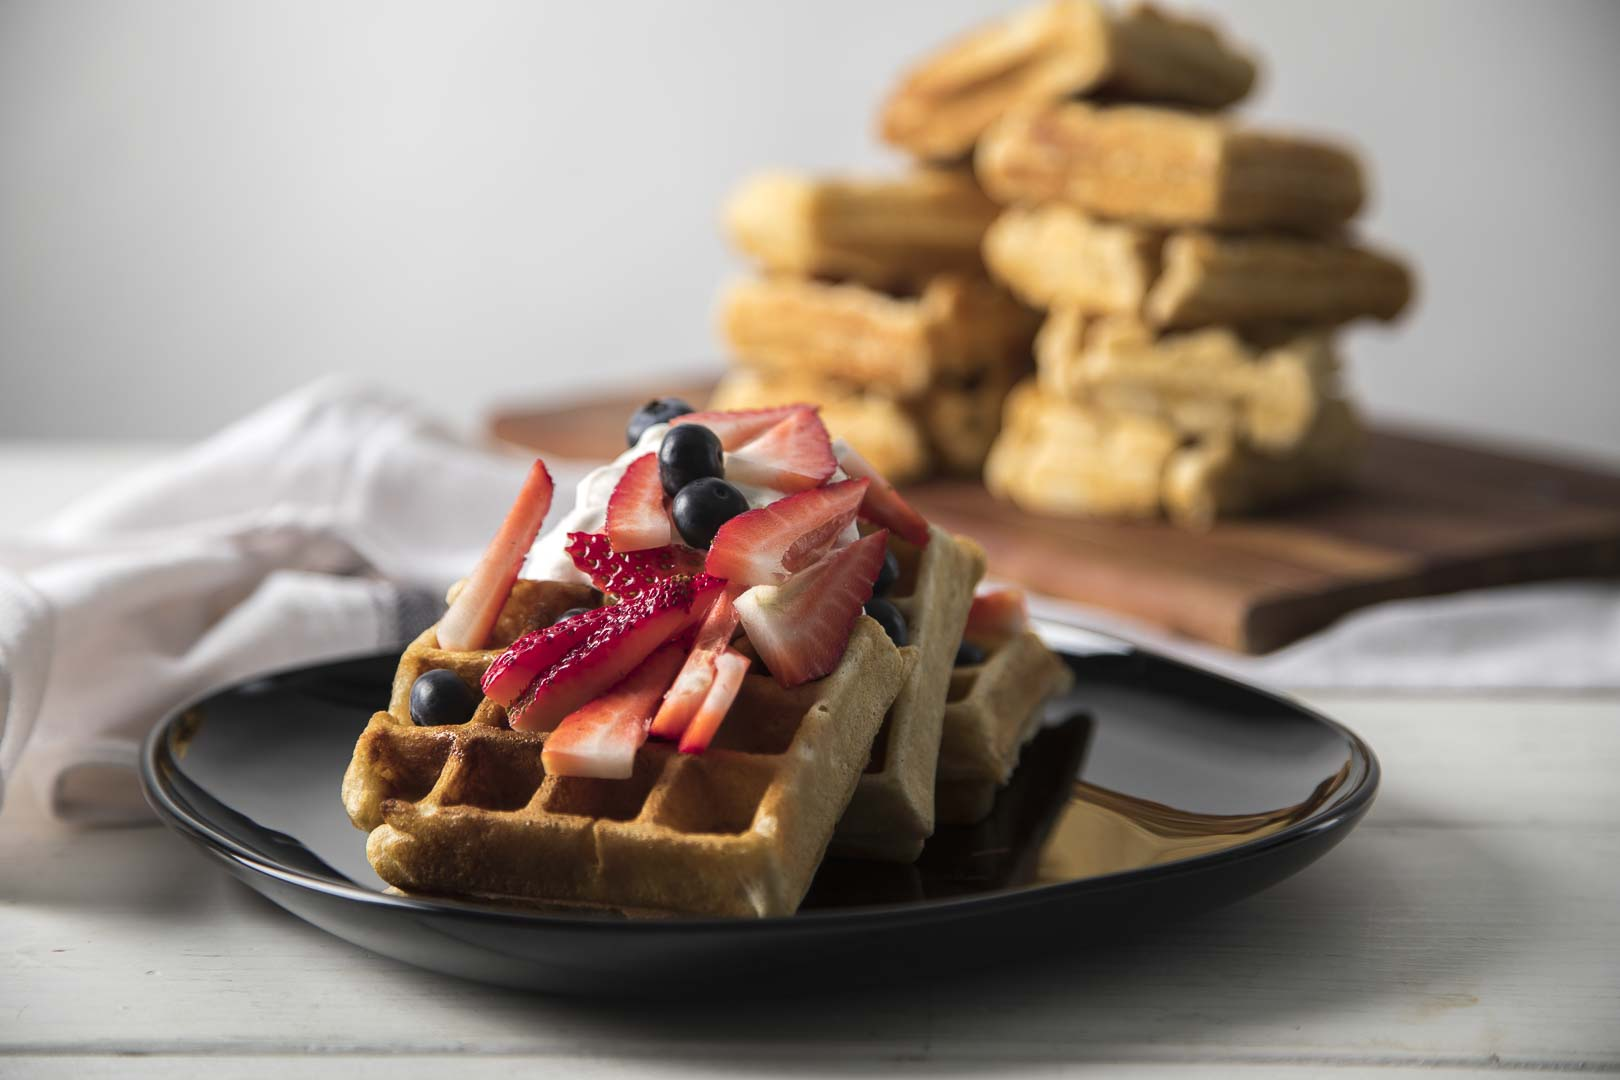 waffles and berries on a plate